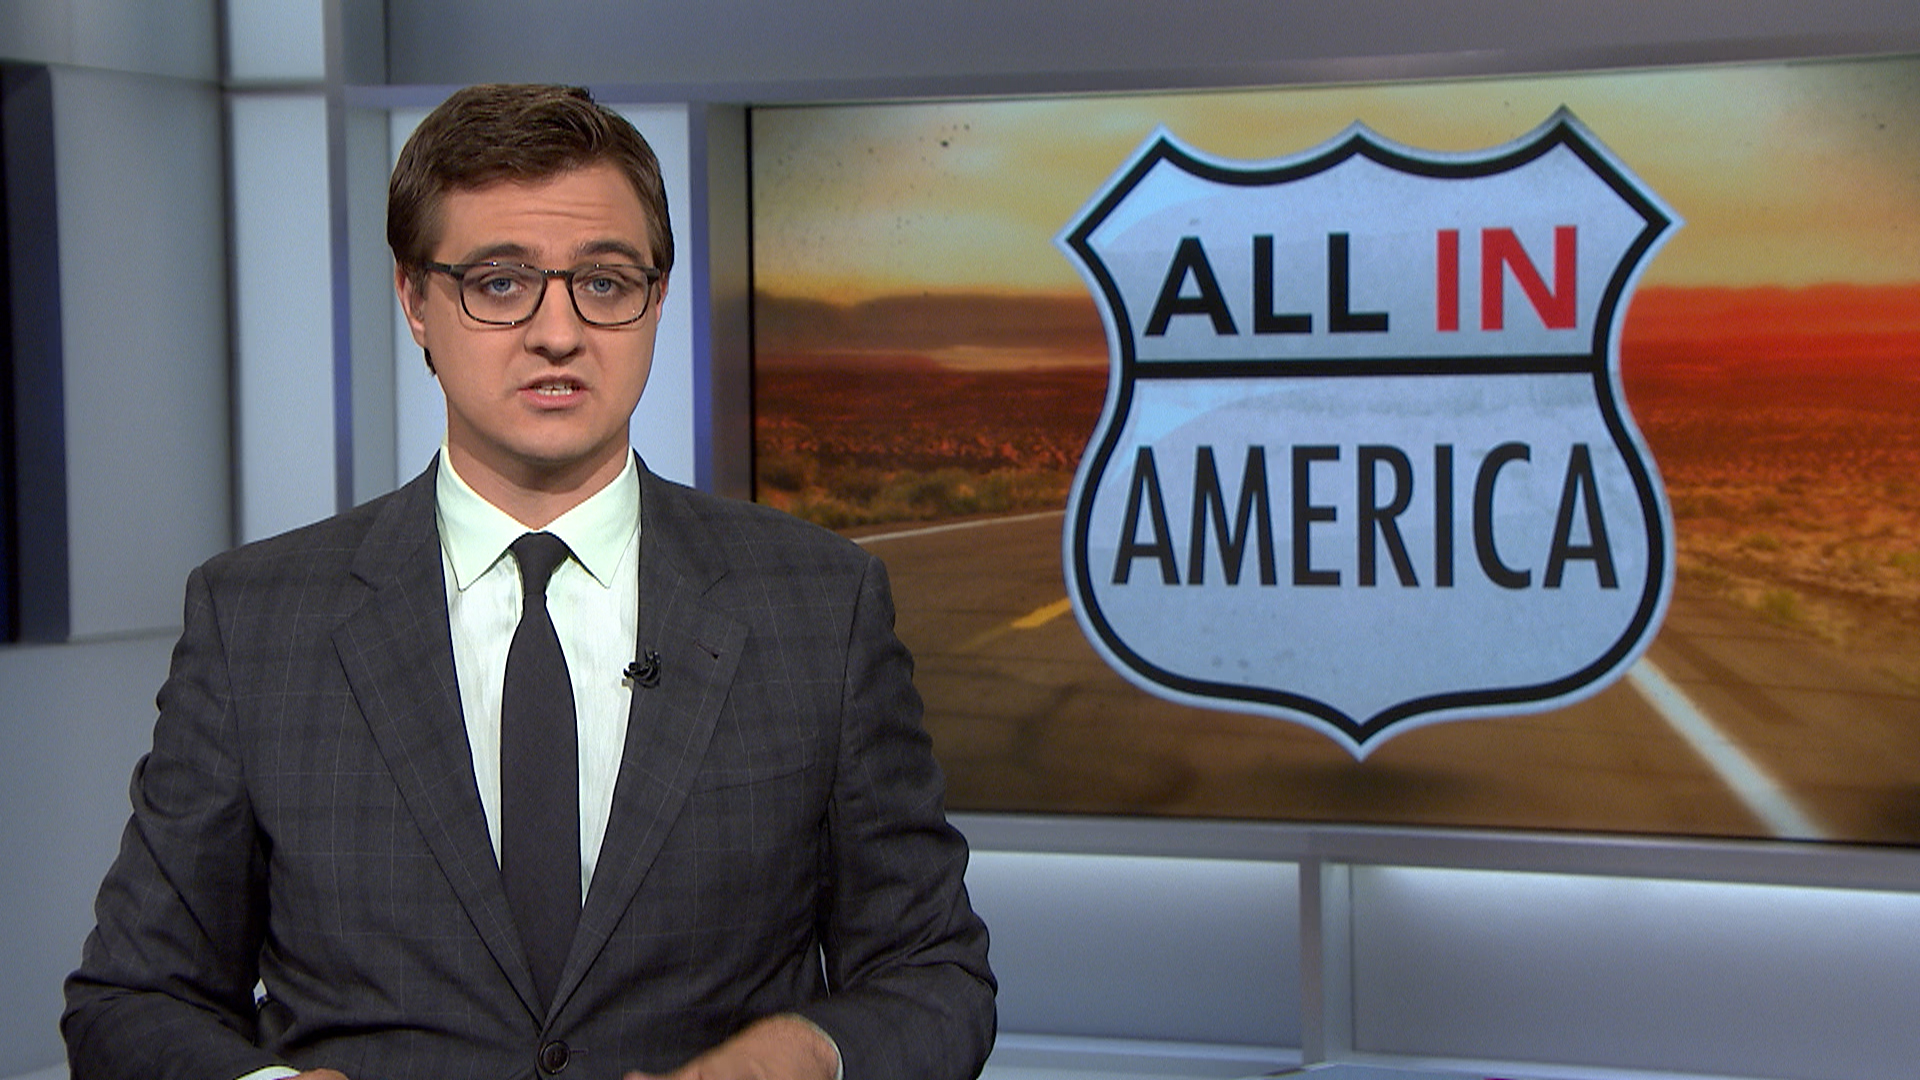 'All In' America goes down to North Carolina